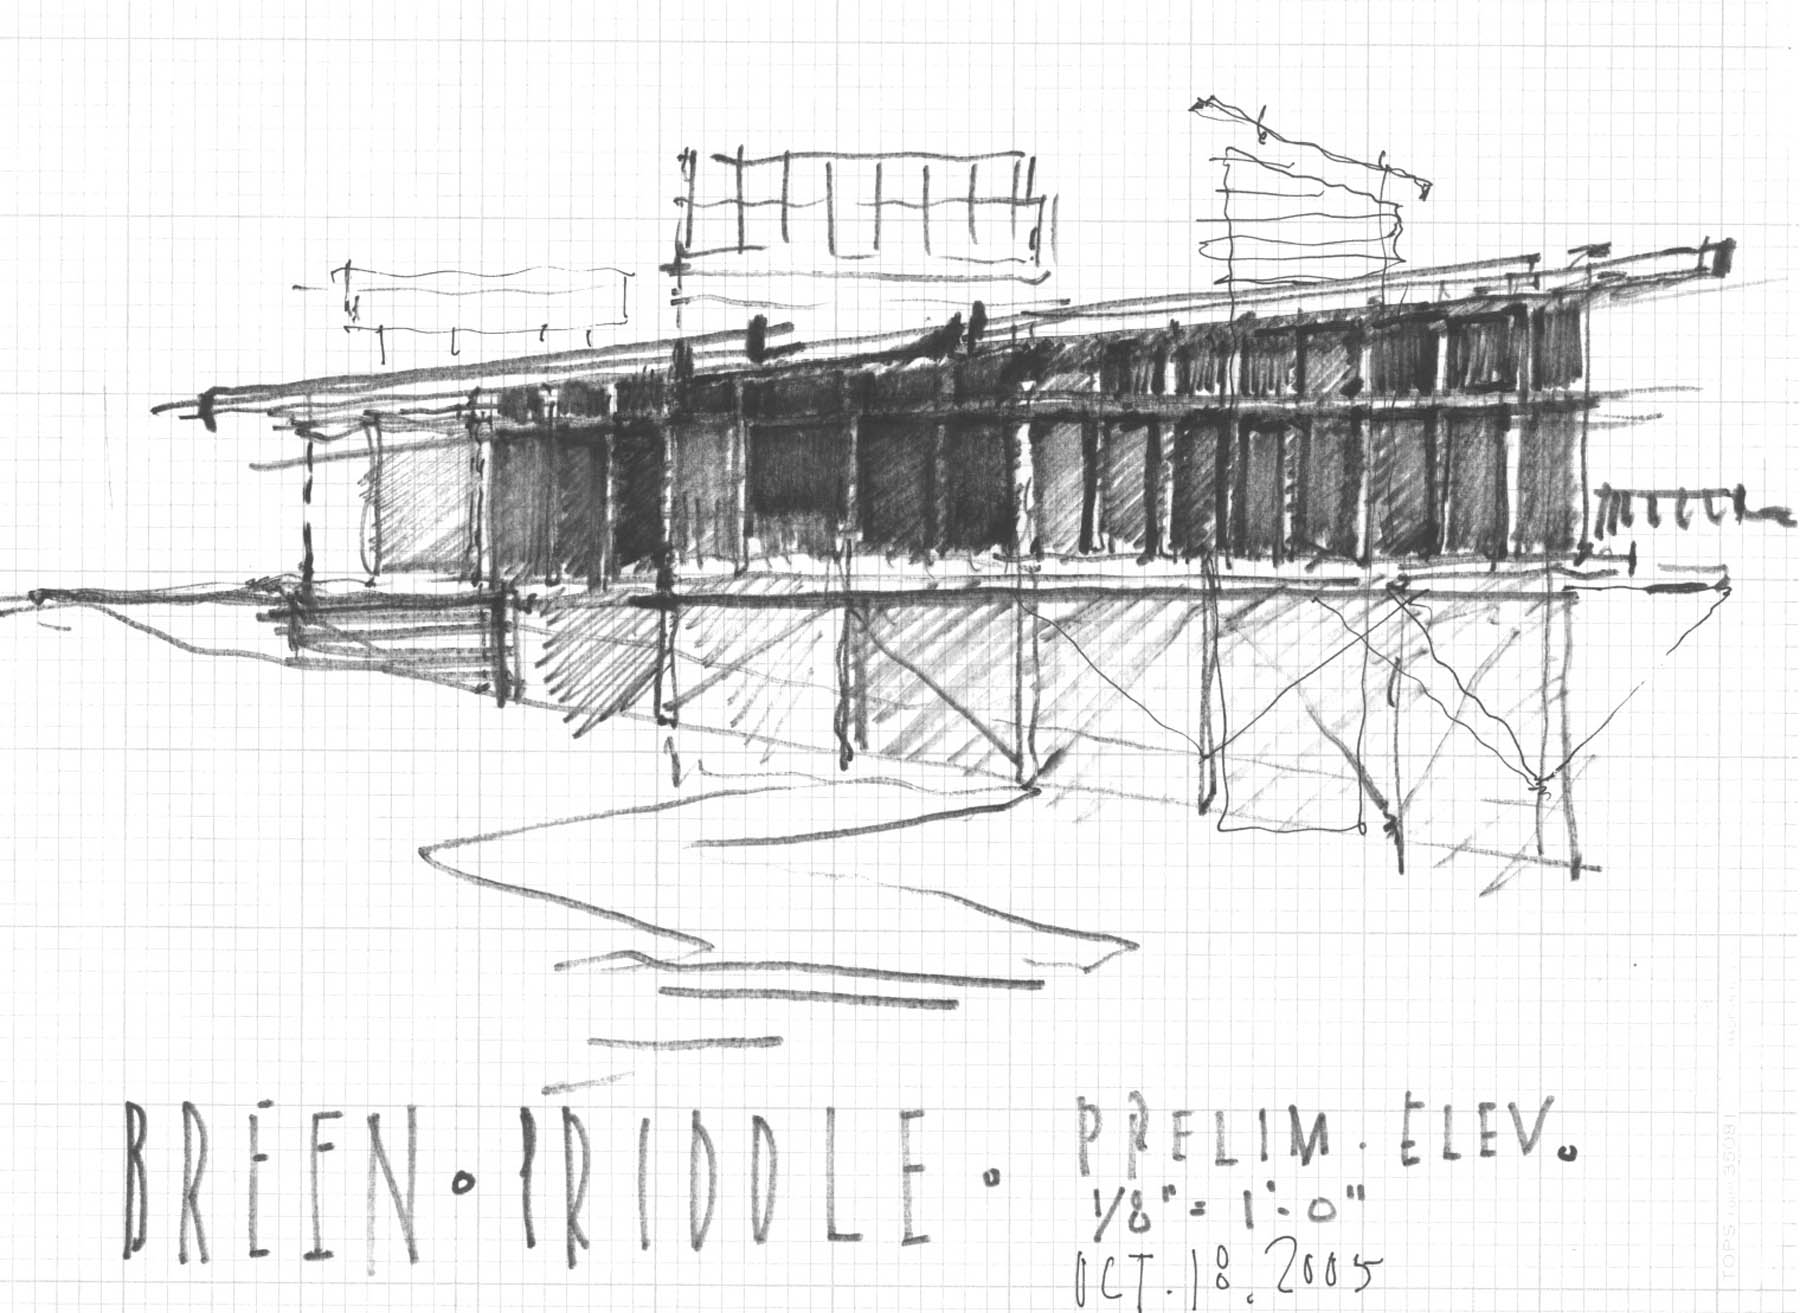 South Elevation Concept Sketch